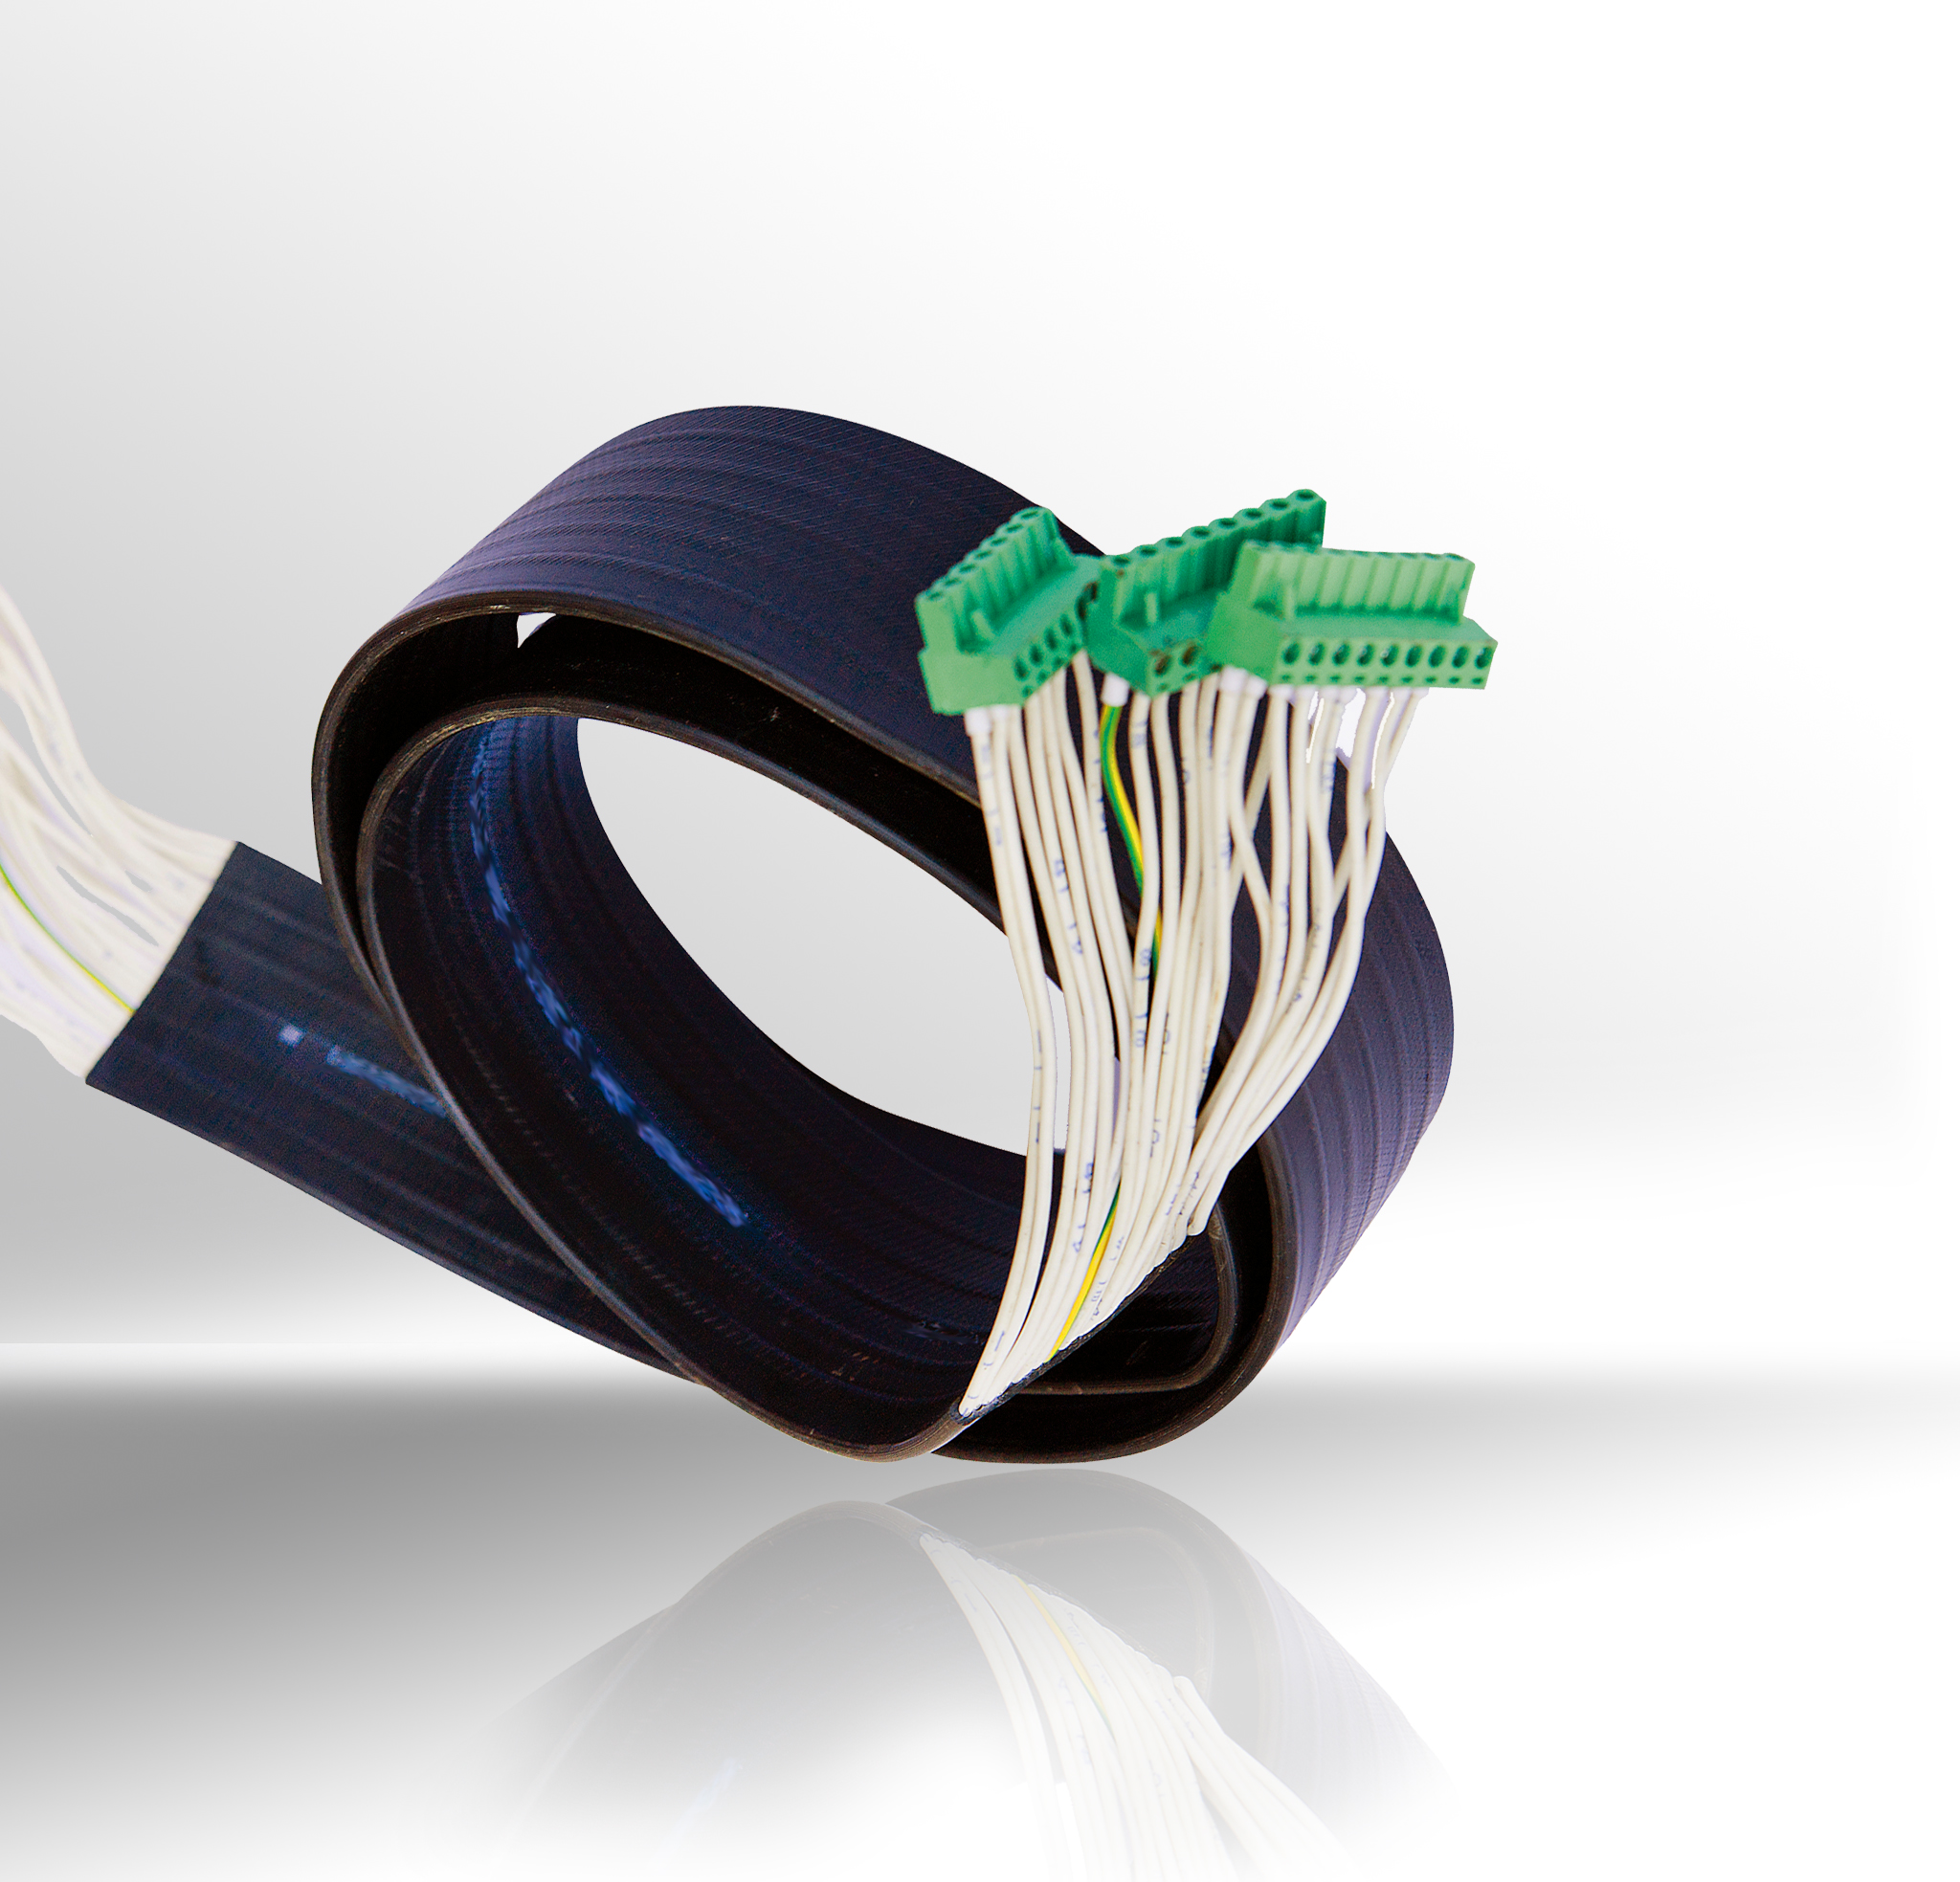 8-8-Elavator-SAFETY-SYSTEMS-Flexible-cable-